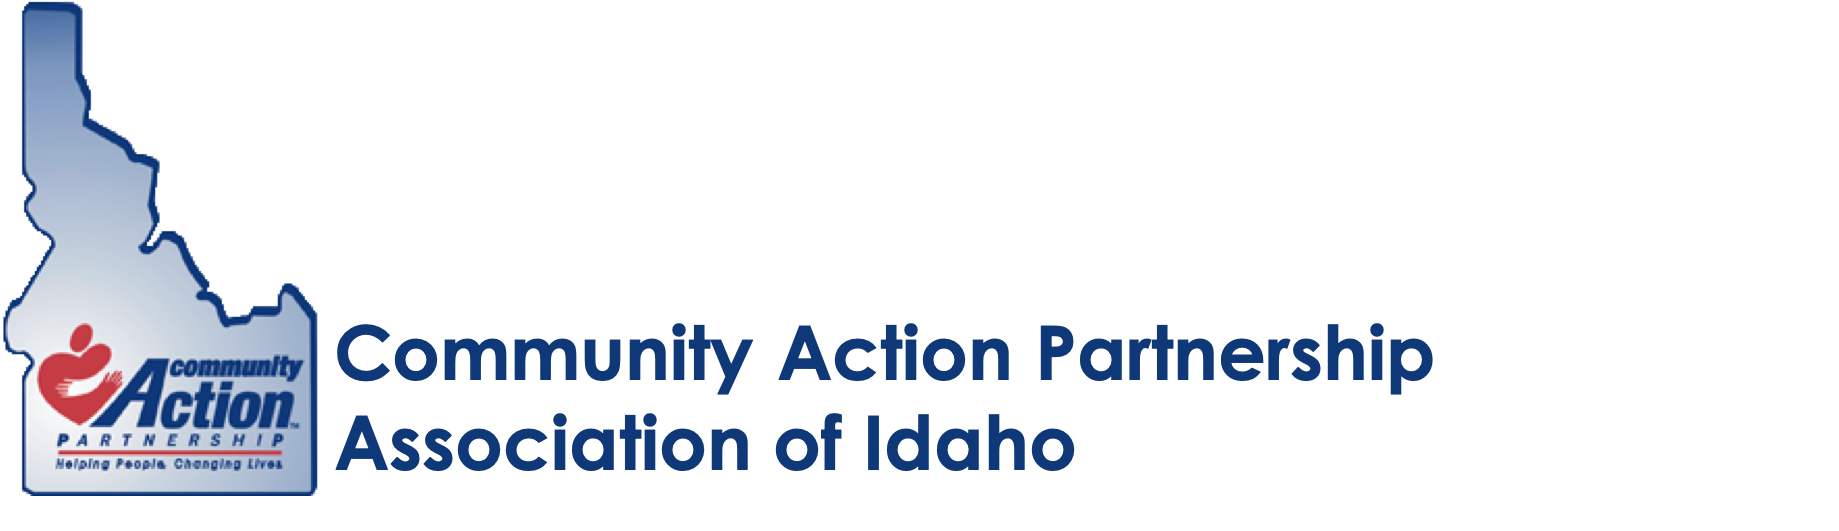 Community Action Association of Idaho